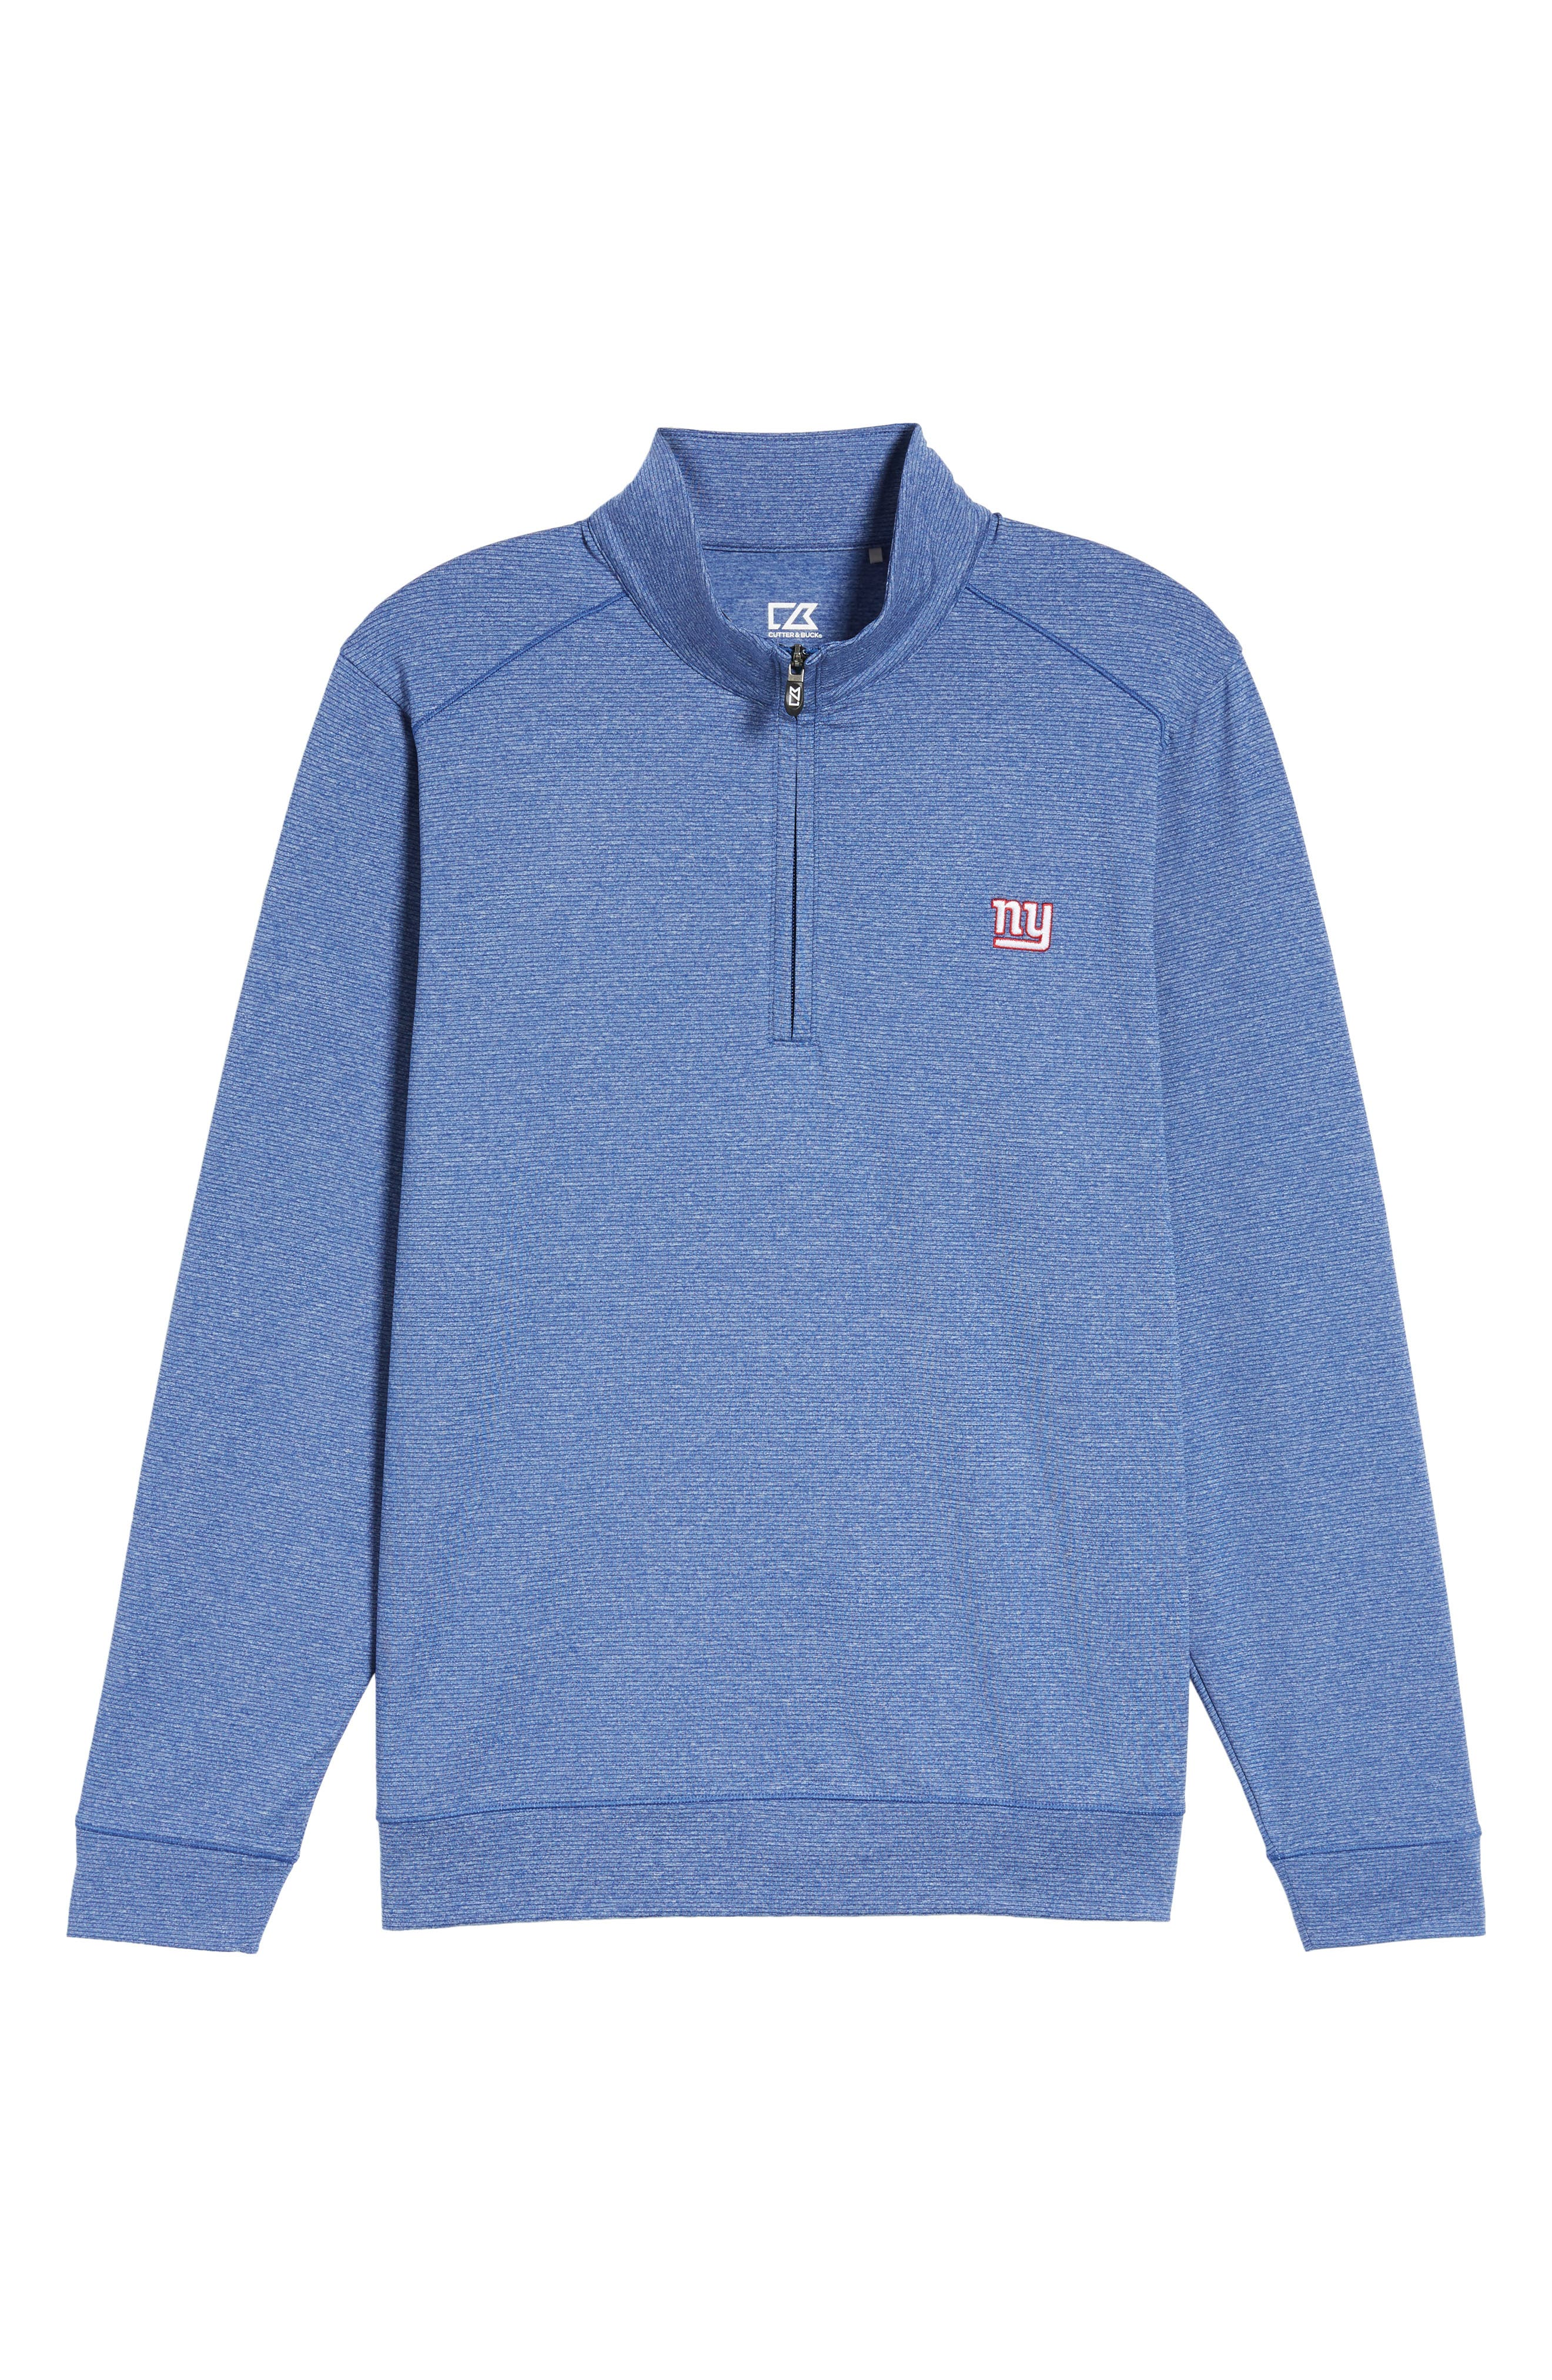 Shoreline - New York Giants Half Zip Pullover,                             Alternate thumbnail 6, color,                             Tour Blue Heather